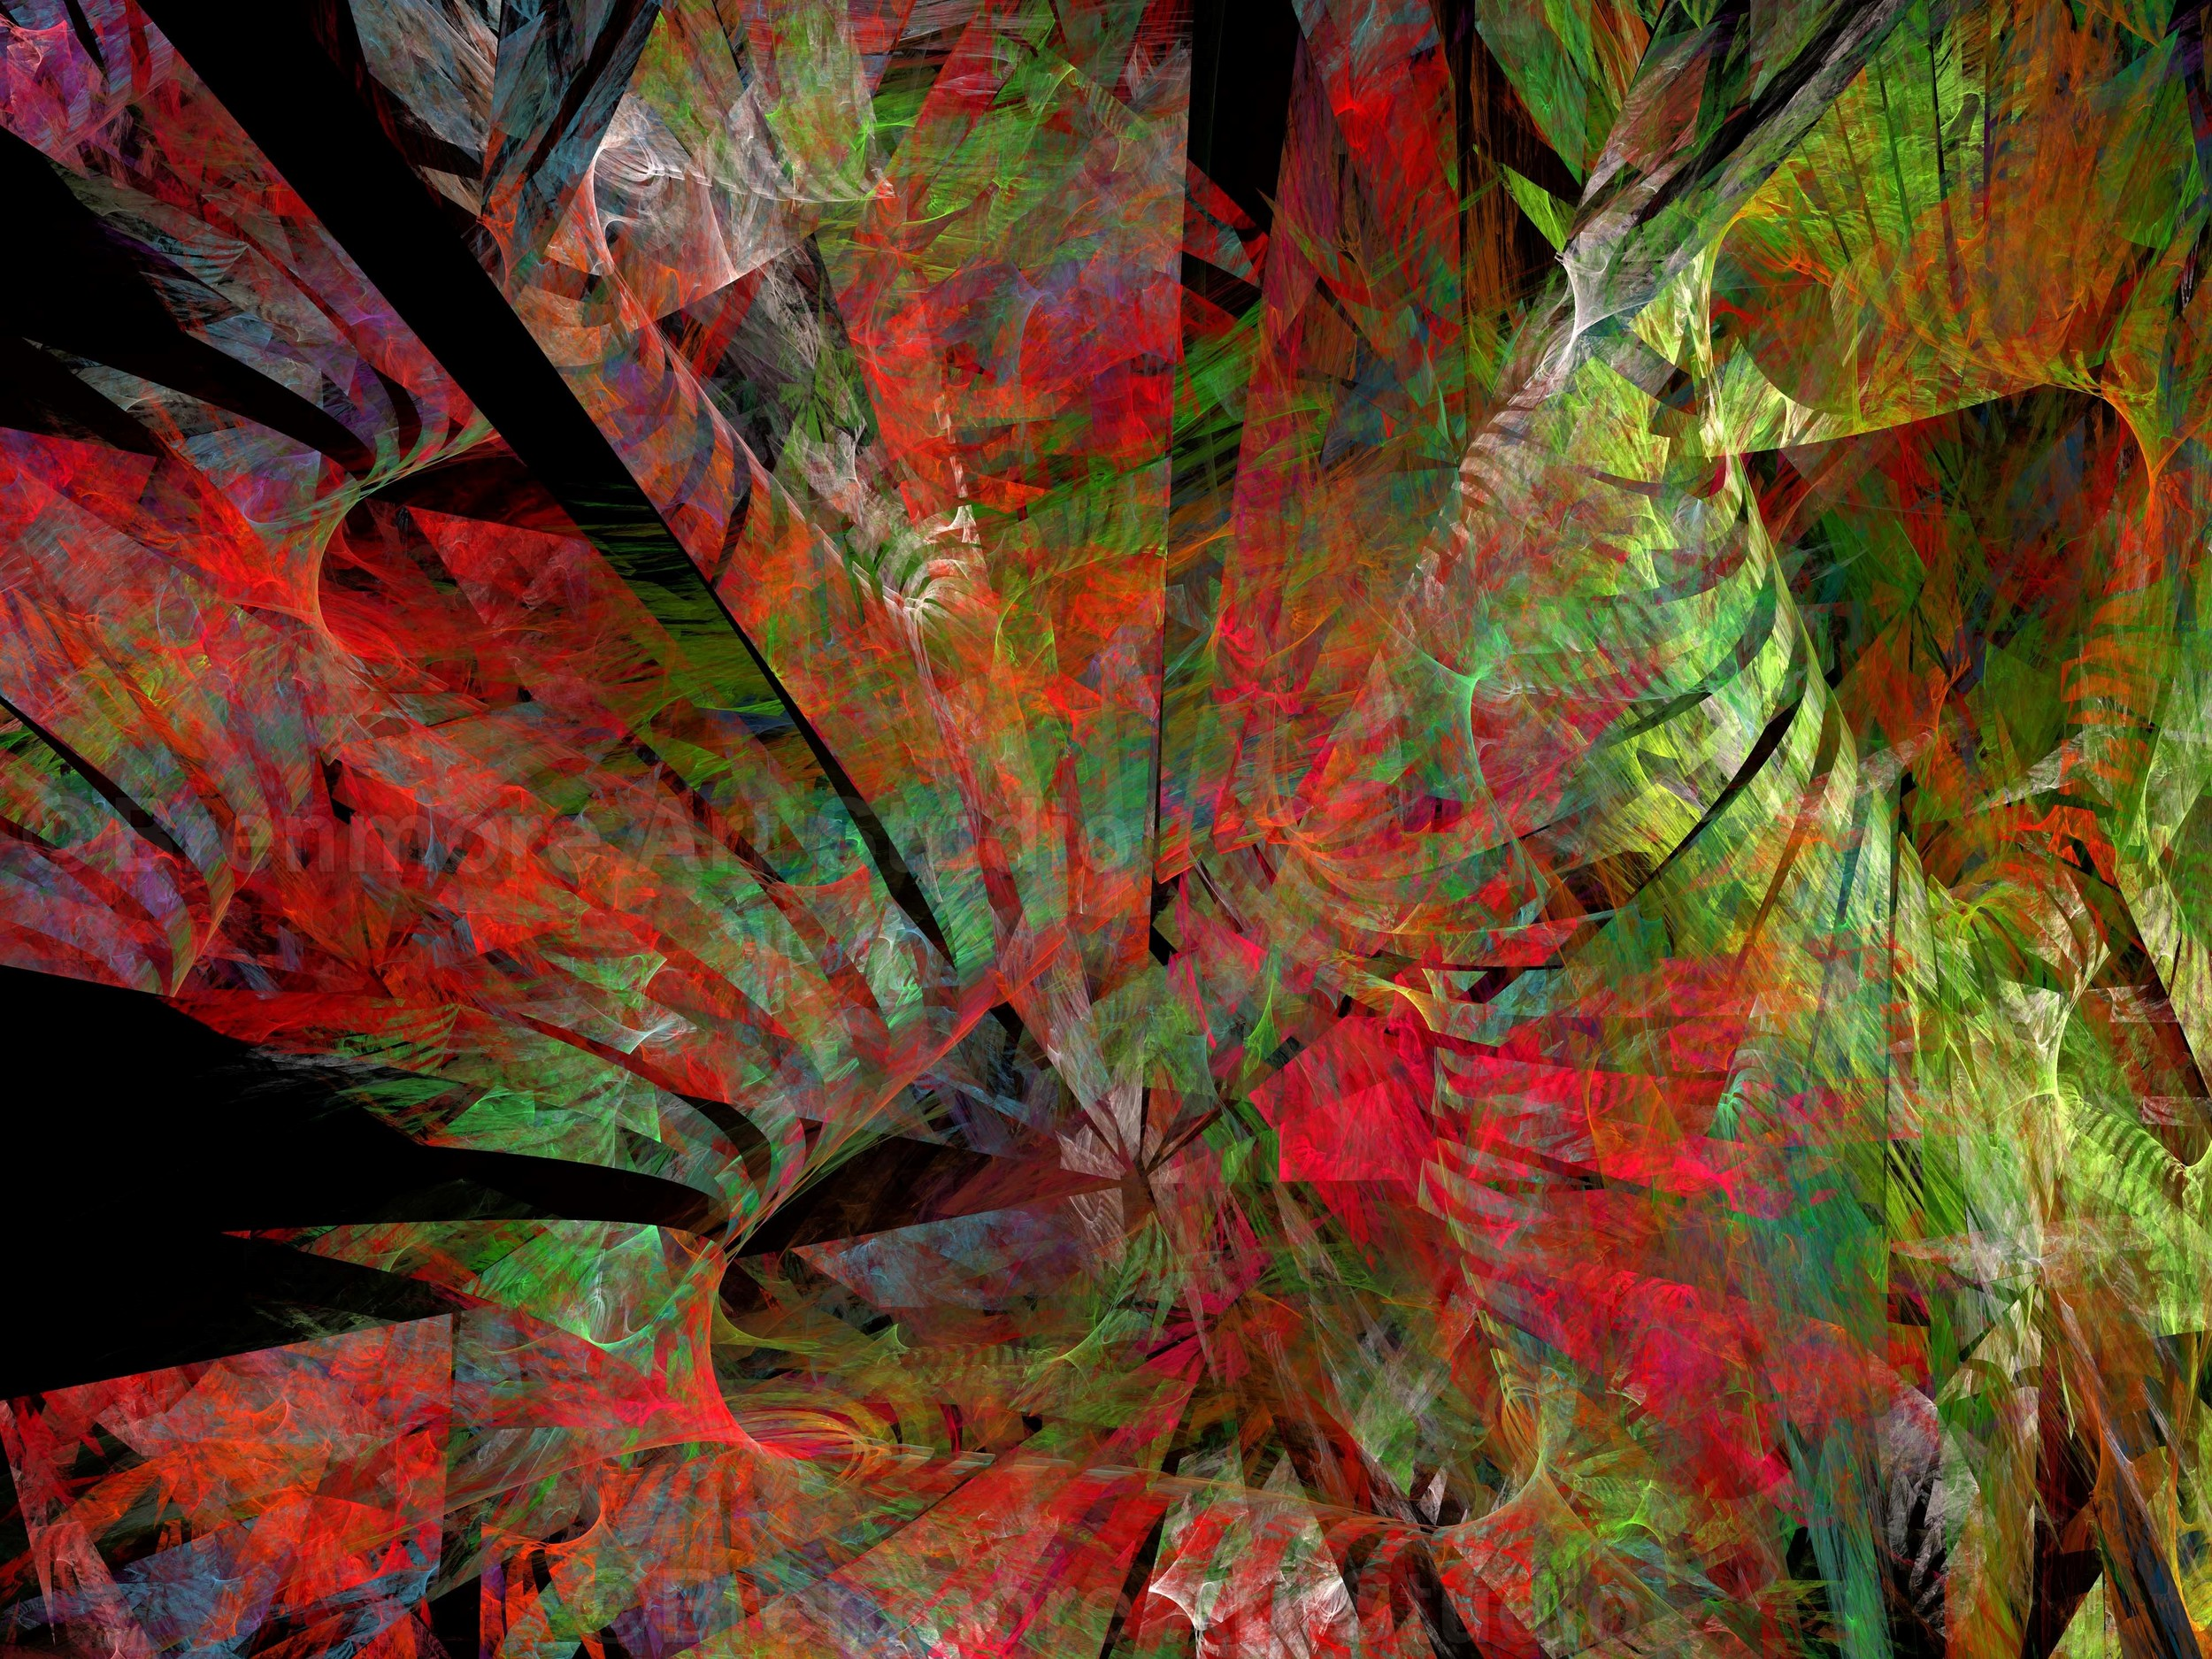 abstract jungle/forest reds and greens